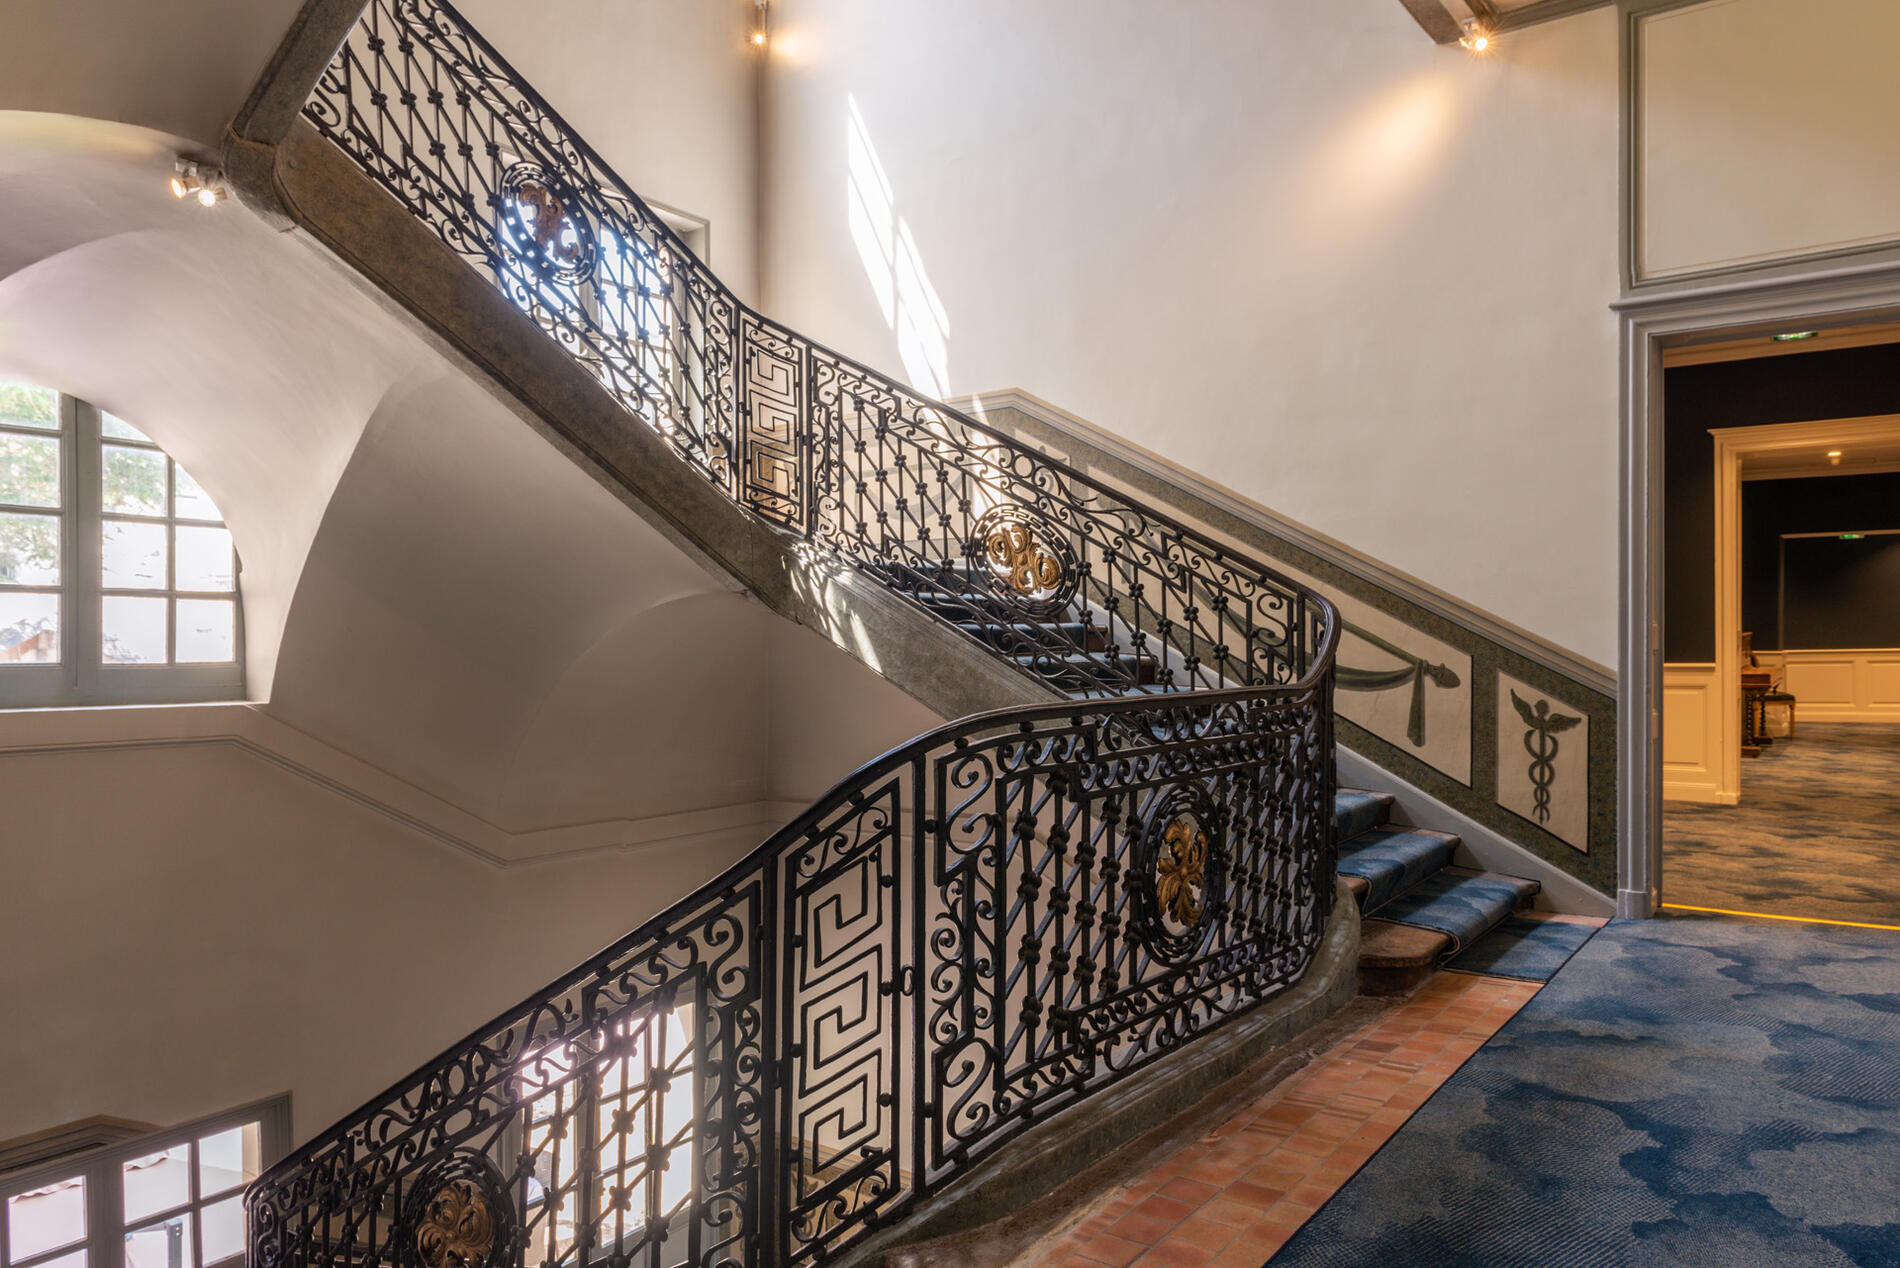 Stairs at Hotel Anne d'Anjou in Saumur, France